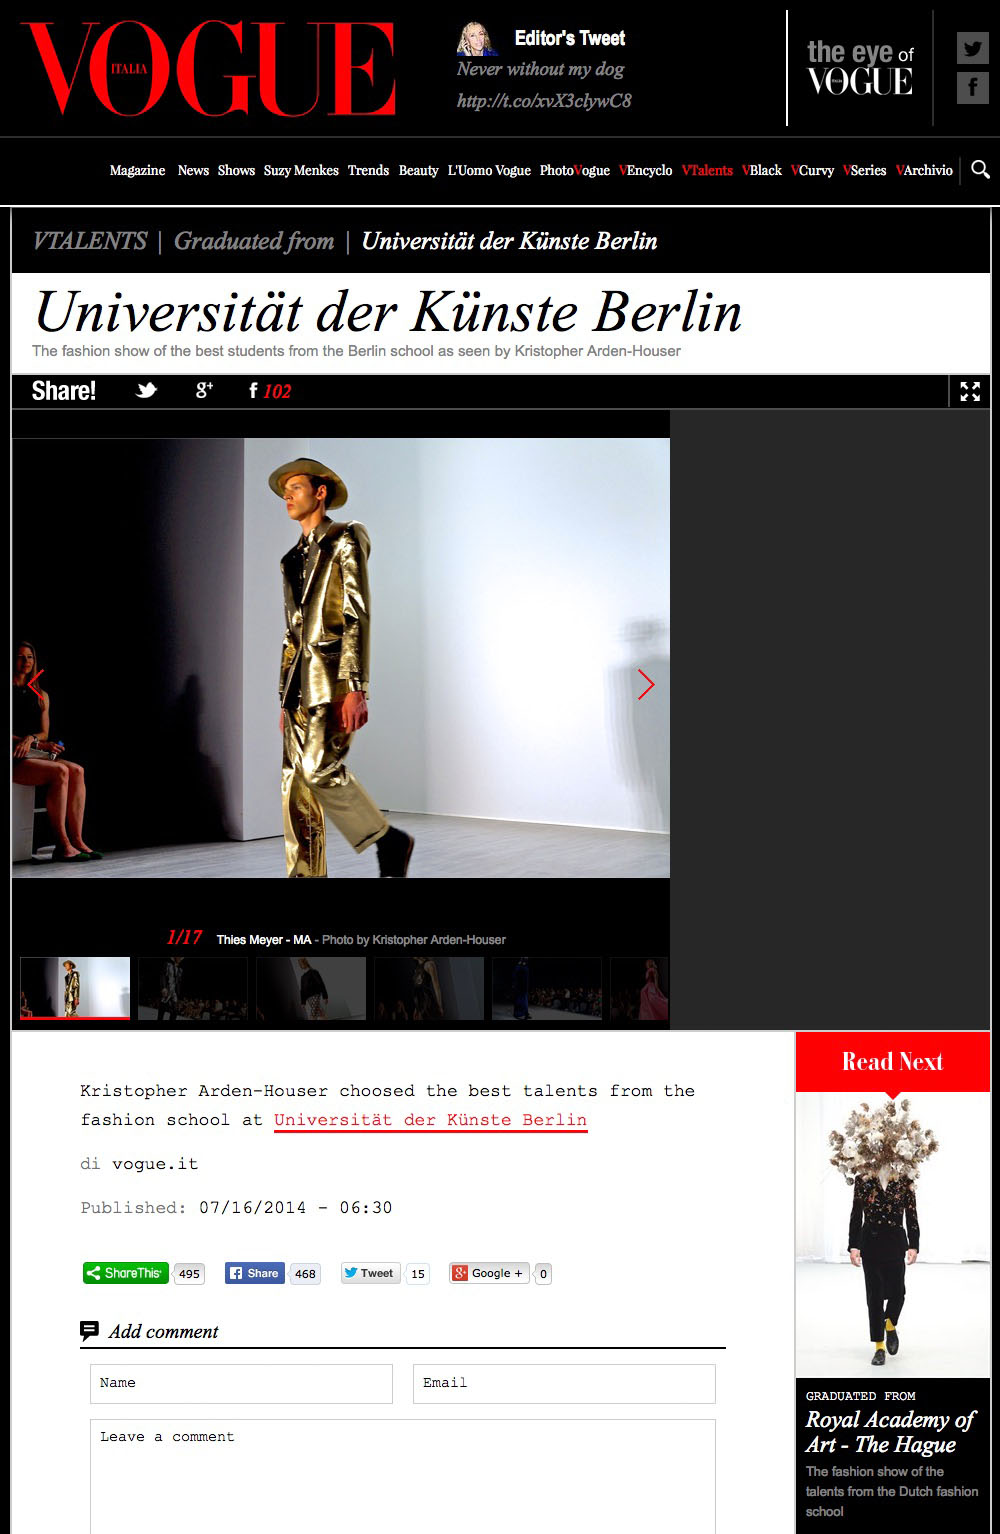 Vogue.it_talents-graduated-from-2014-07-universitat-der-kunste-berlin (20150512)